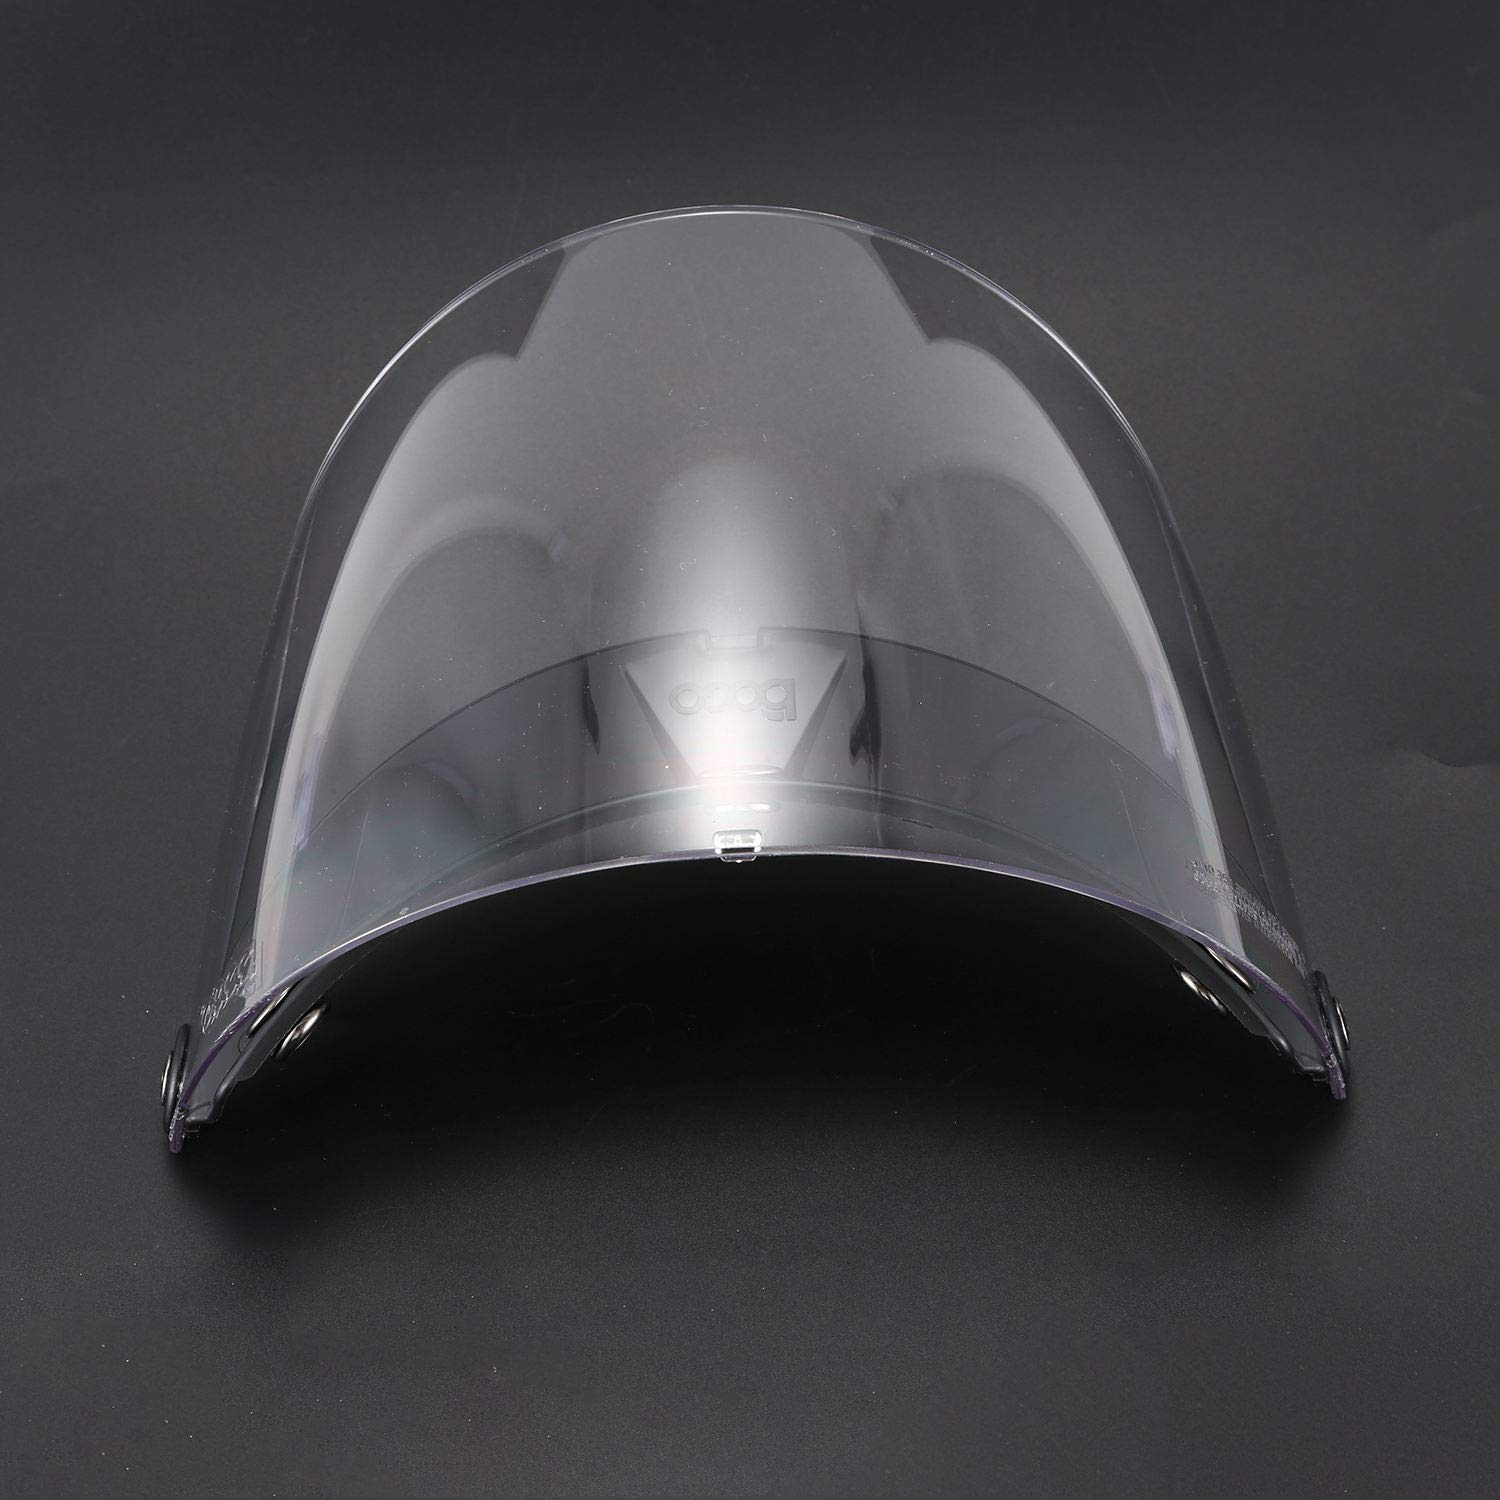 WOVELOT for motorcycles with visor for open face helmet for three Harley Harley buckles